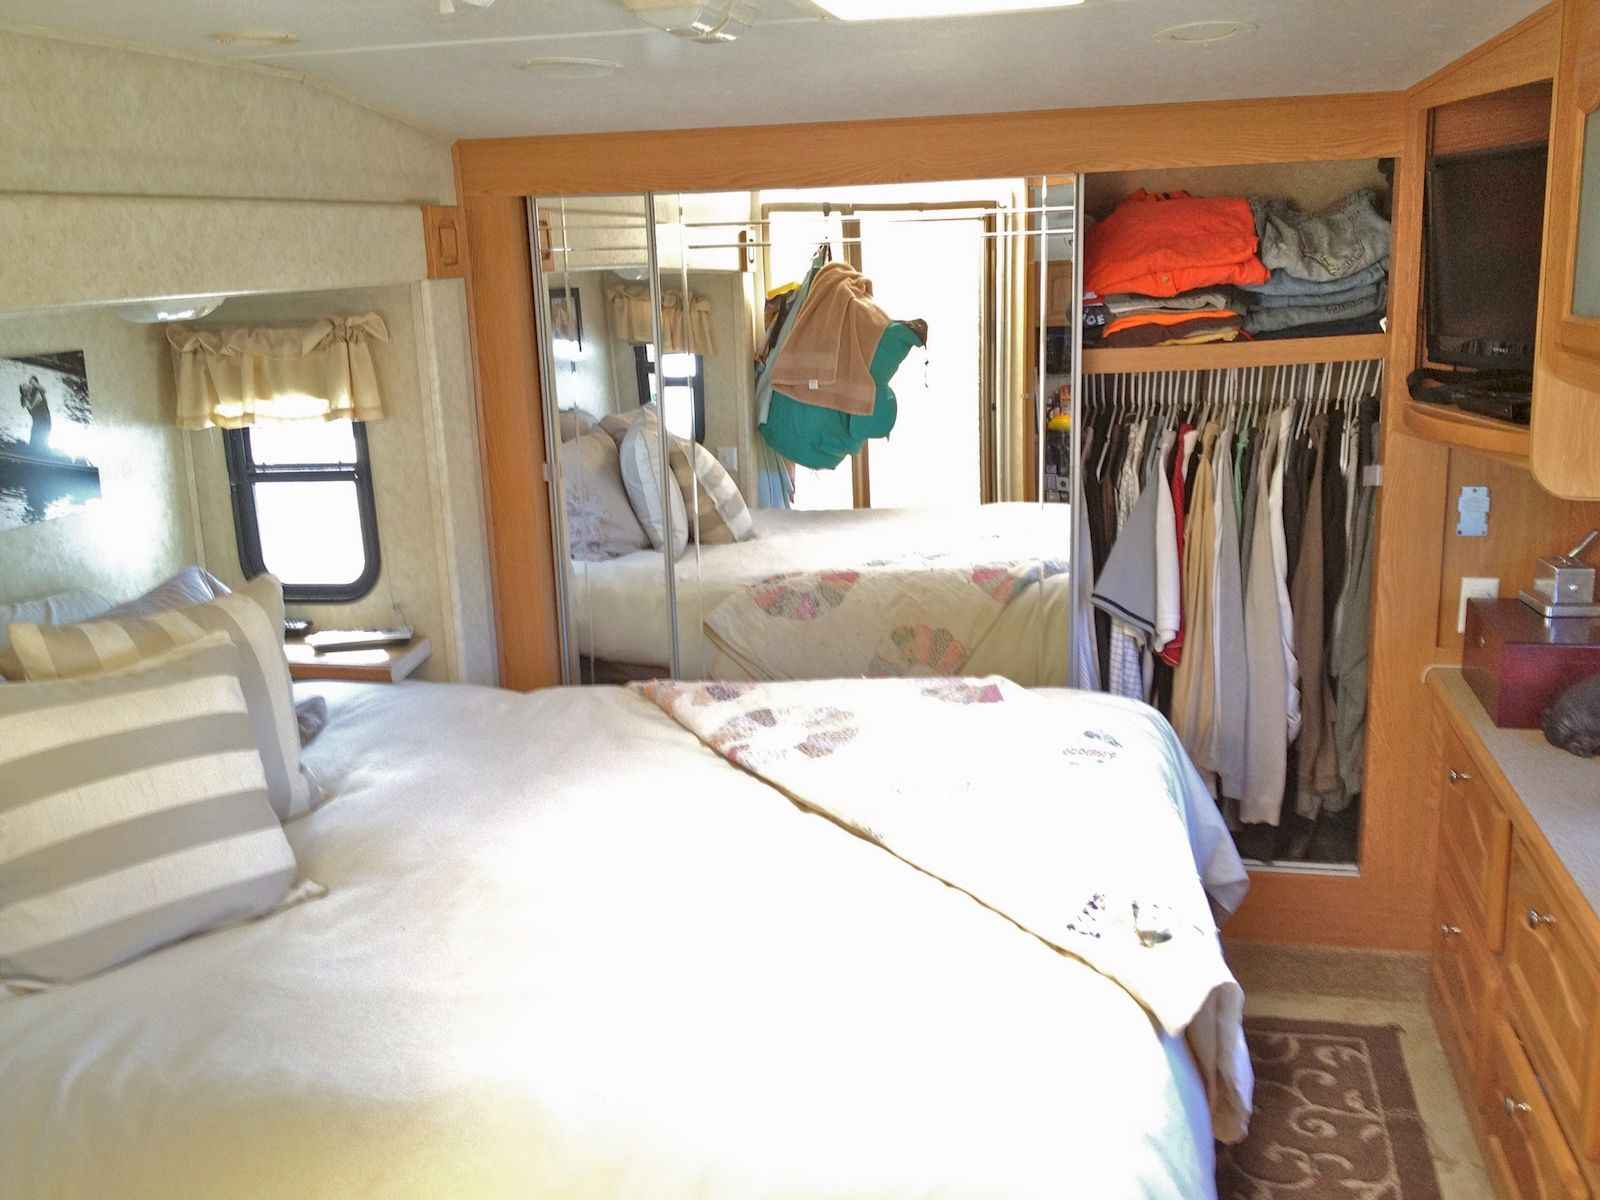 70 Stunning RV Living Camper Room Ideas Decorations Make Your Summer Awesome (40)